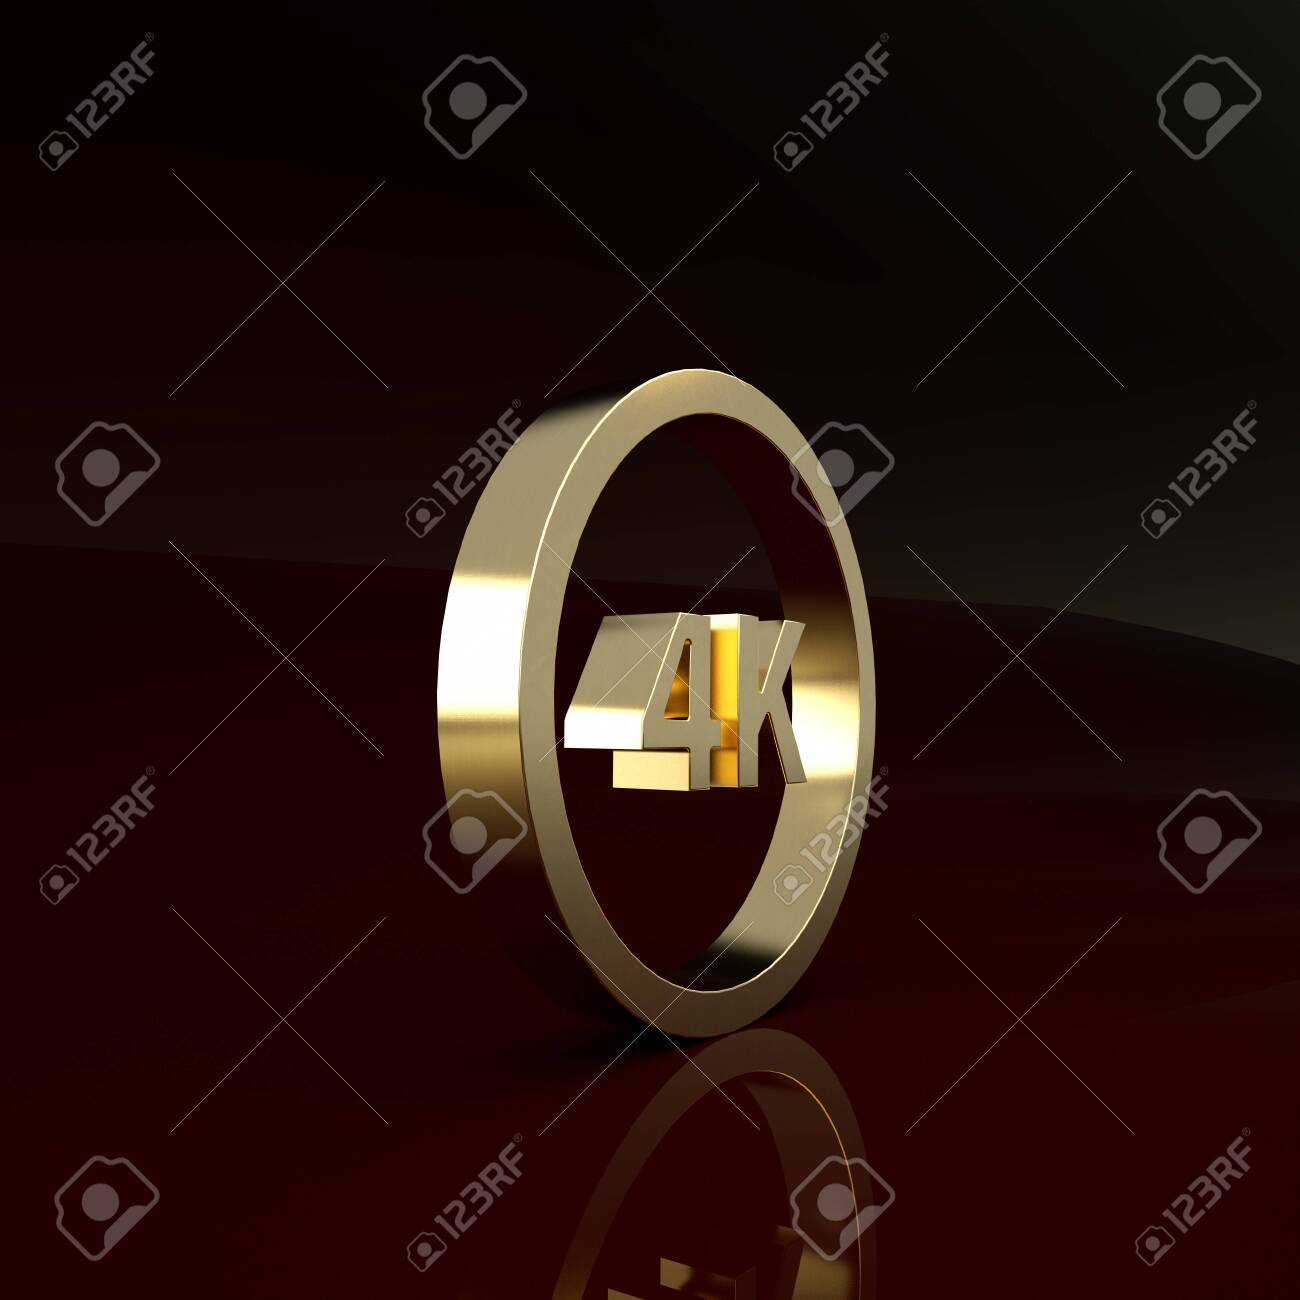 Gold 4k Ultra Hd Icon Isolated On Brown Background Minimalism Stock Photo Picture And Royalty Free Image Image 142190348